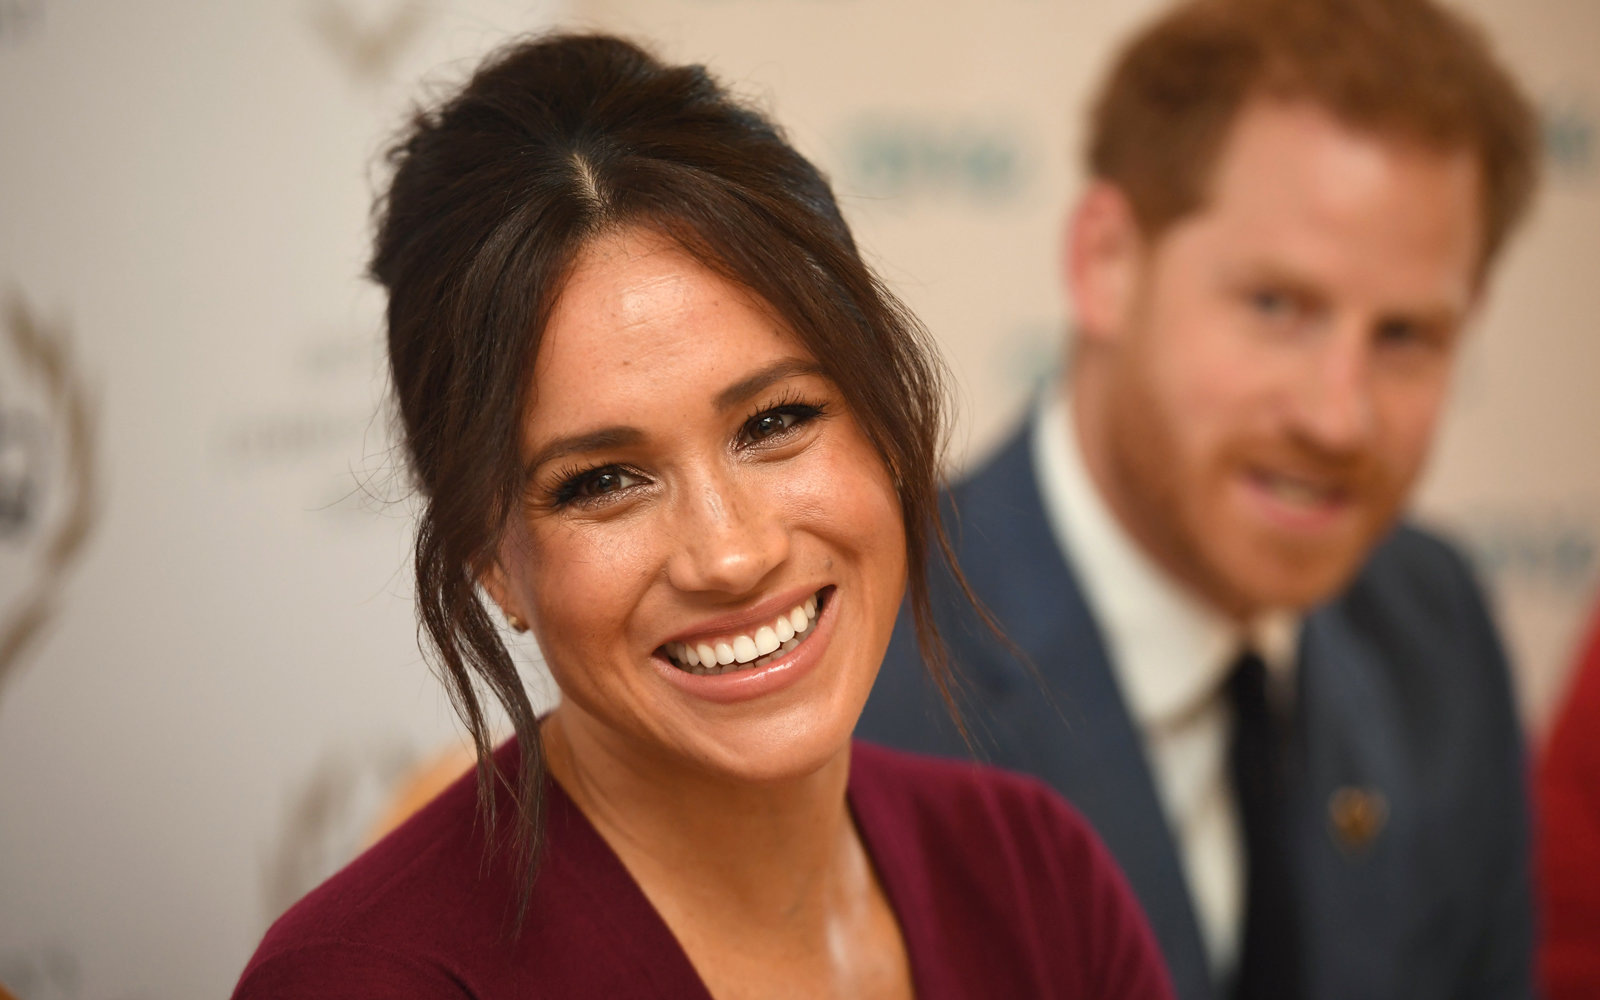 Meghan Markle goes incognito to volunteer at Toronto charity in never-before-seen photo